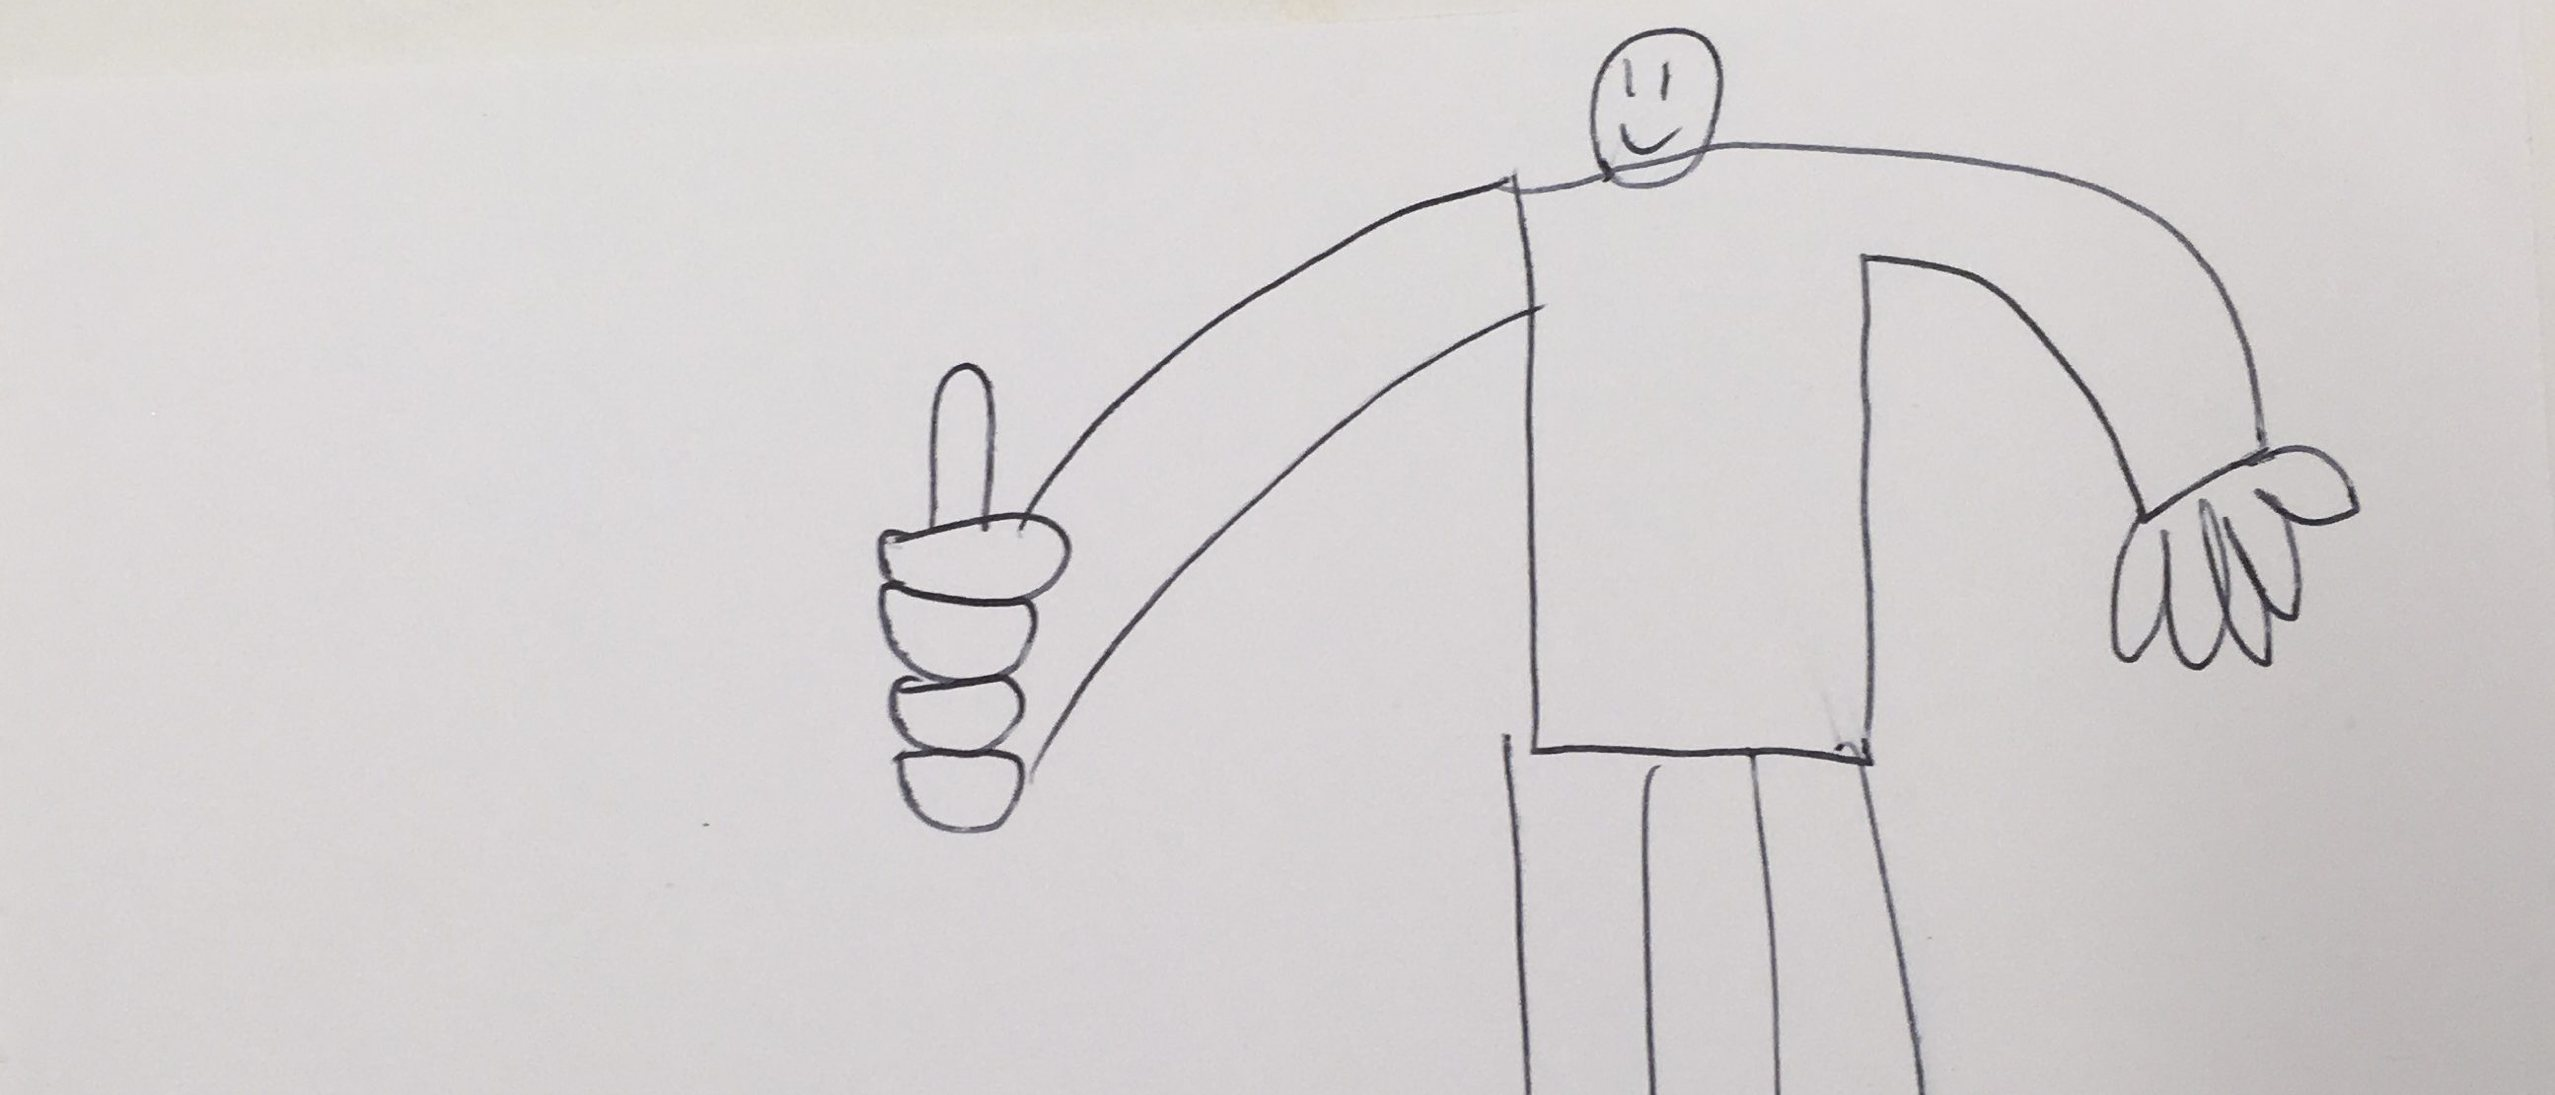 child pencil drawing of figure with thumbs up